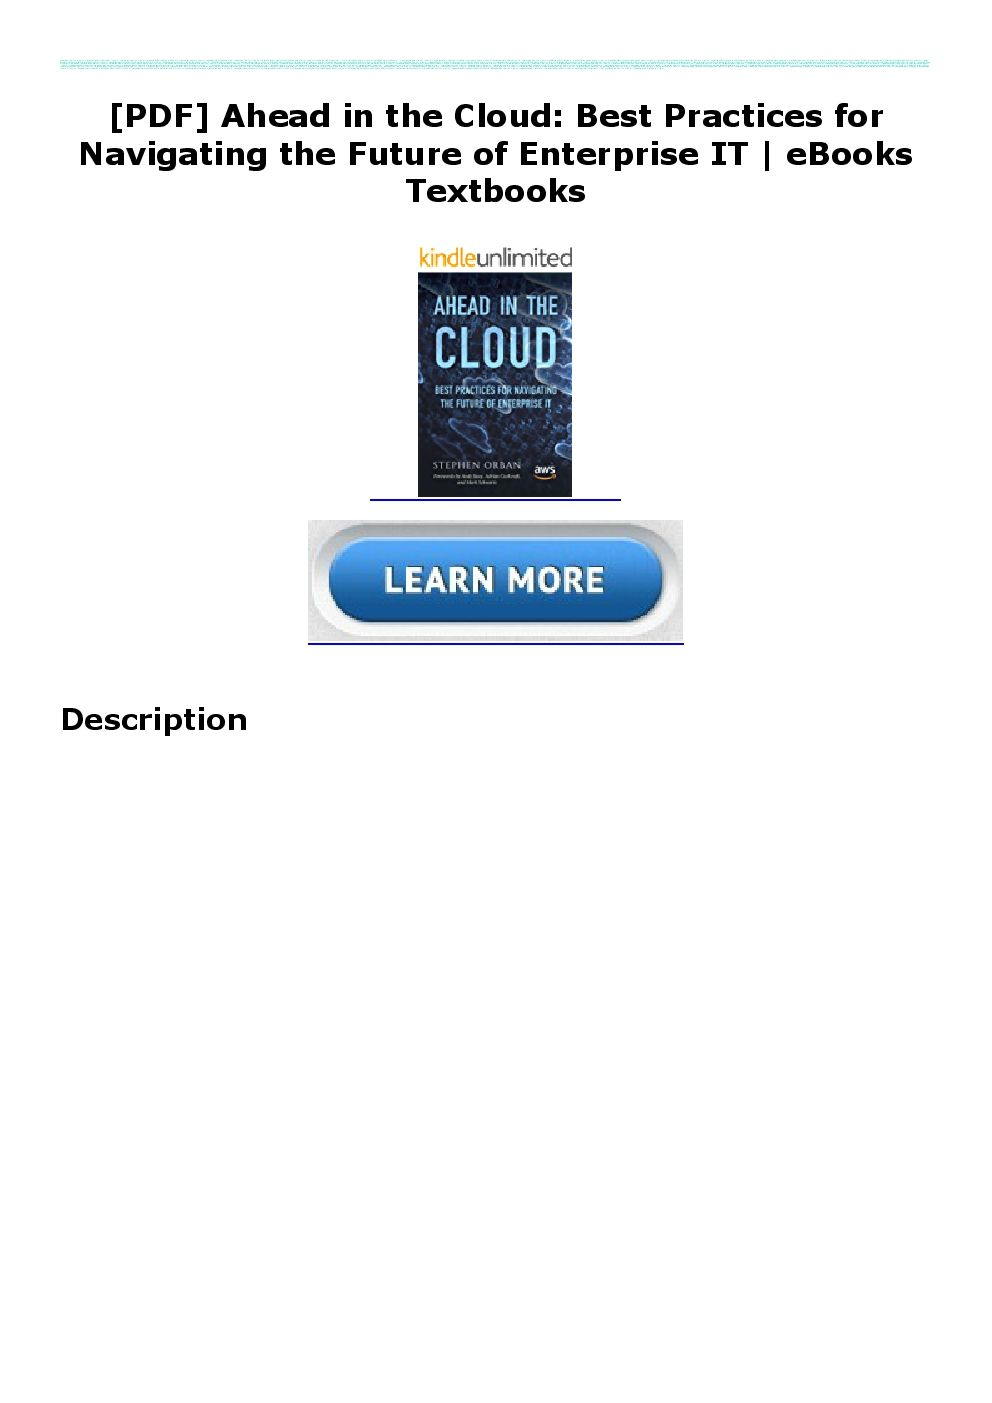 Pdf Ahead In The Cloud Best Practices For Navigating The Future Of Enterprise It Ebooks Textboo Enterprise Ebooks Book Worth Reading How to read pdf on mobile